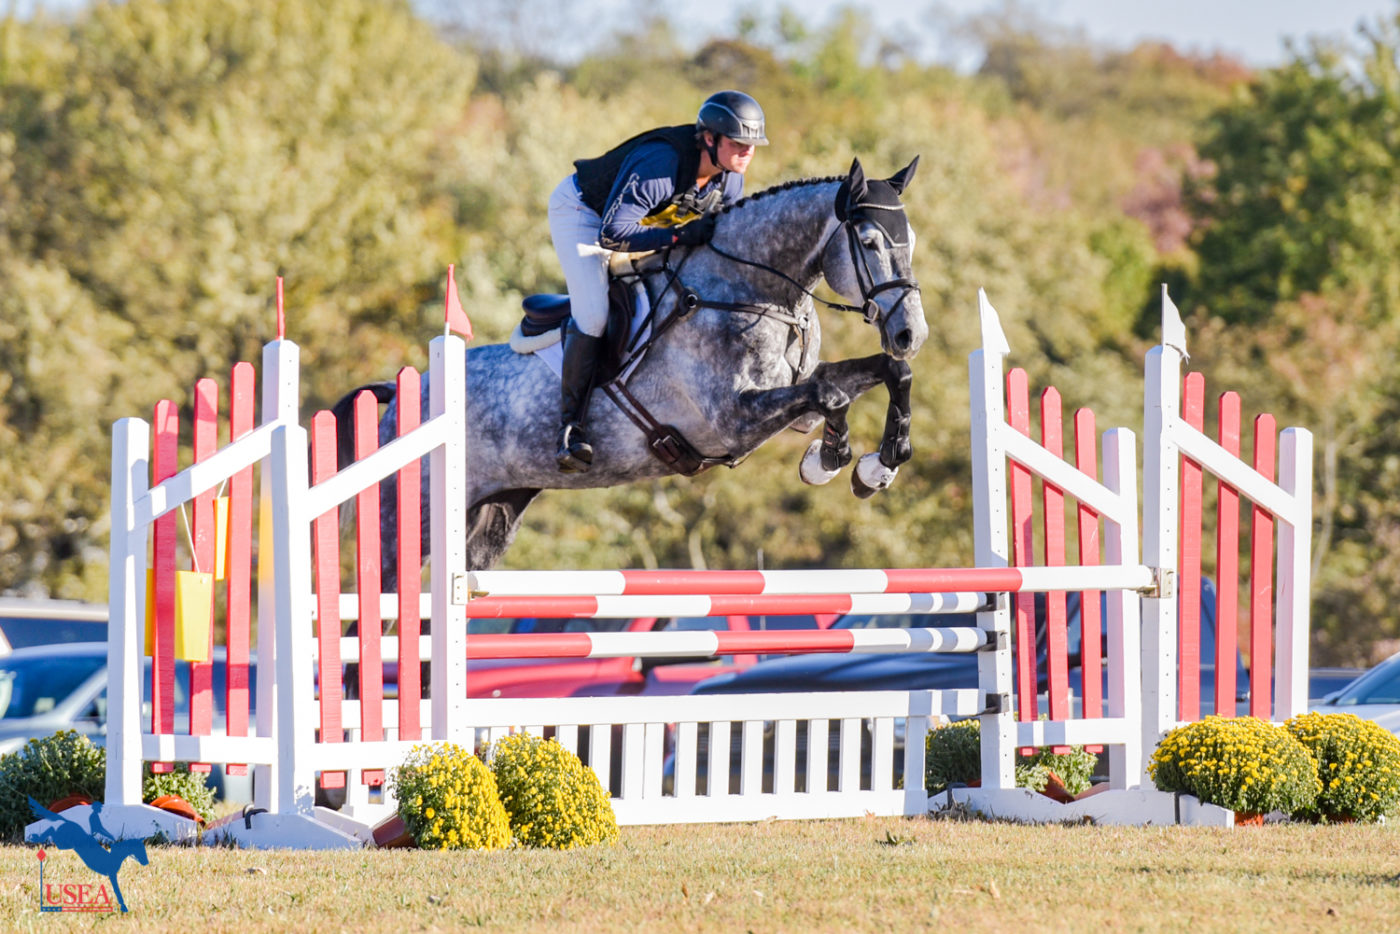 How to Prepare Young Horses for the Show Atmosphere with the O'Neals